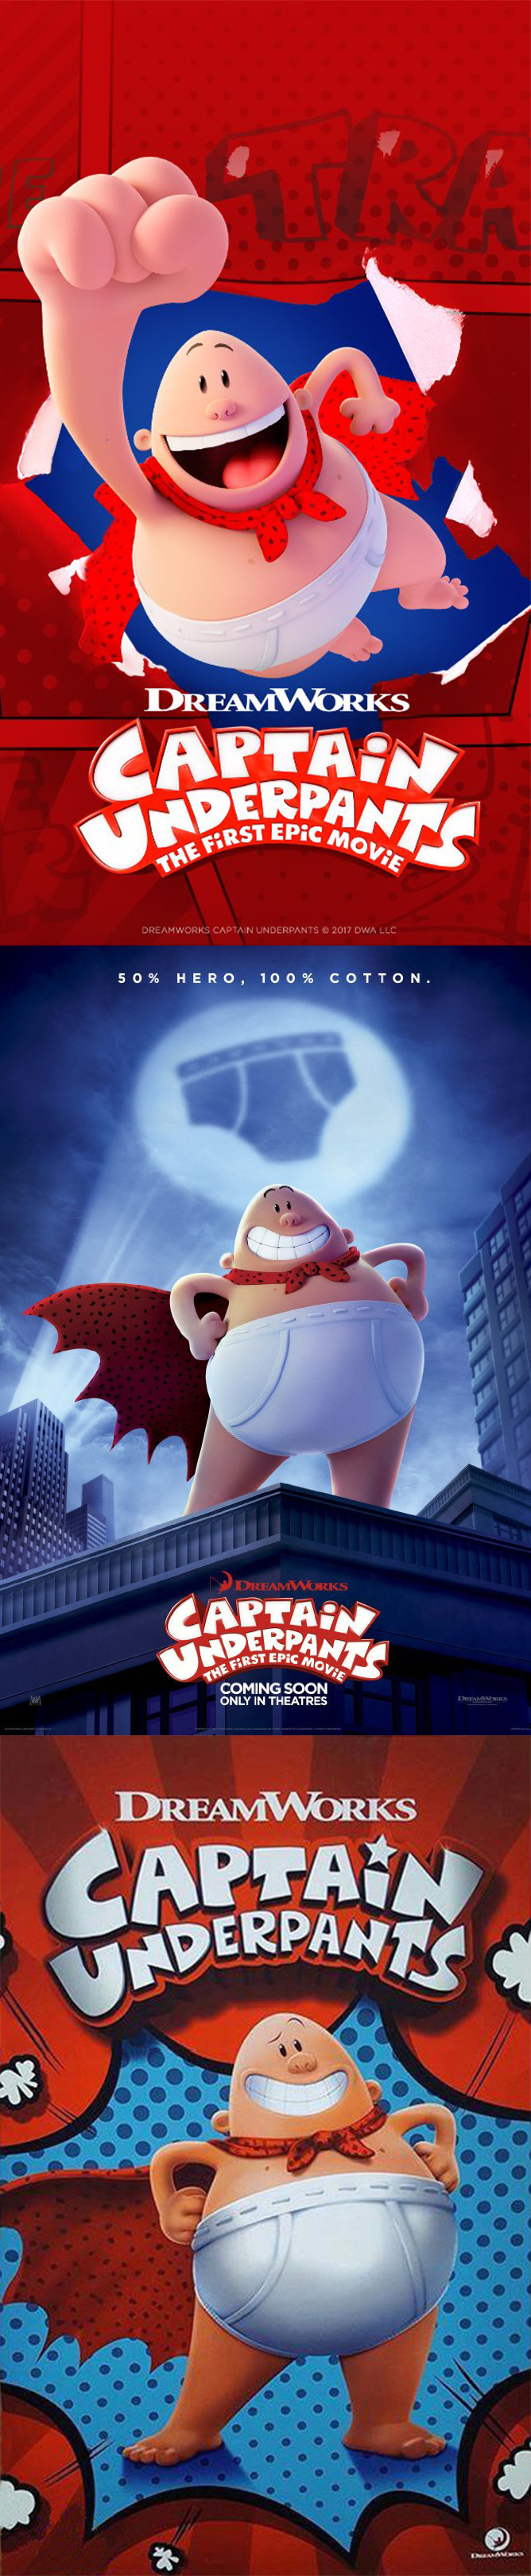 Captain Underpants The First Epic Movie Wallpapers Posted By Samantha Thompson